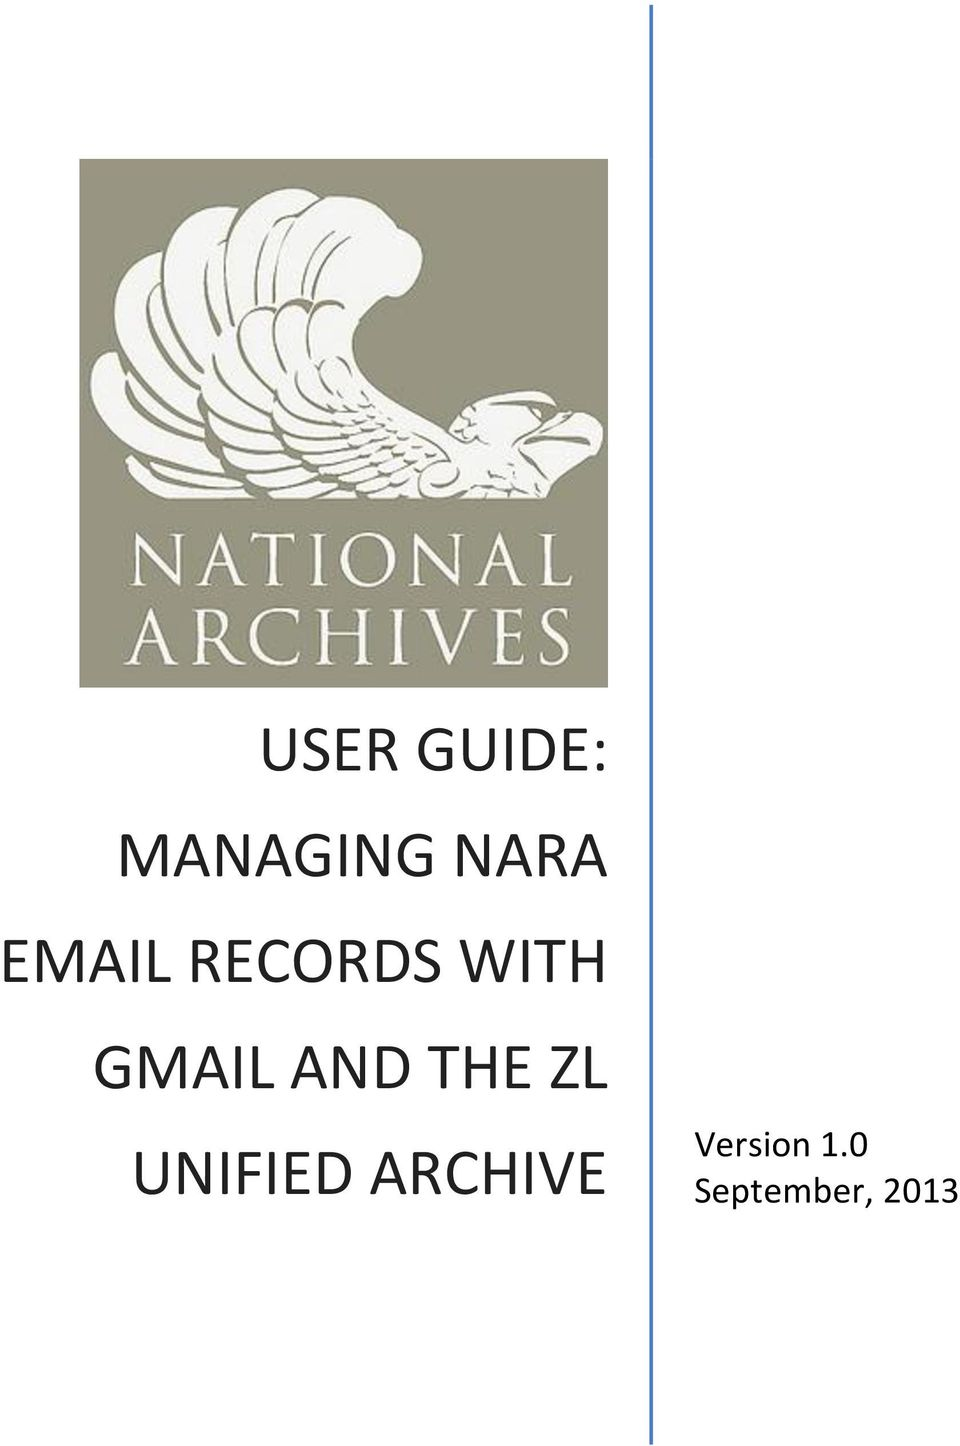 AND THE ZL UNIFIED ARCHIVE